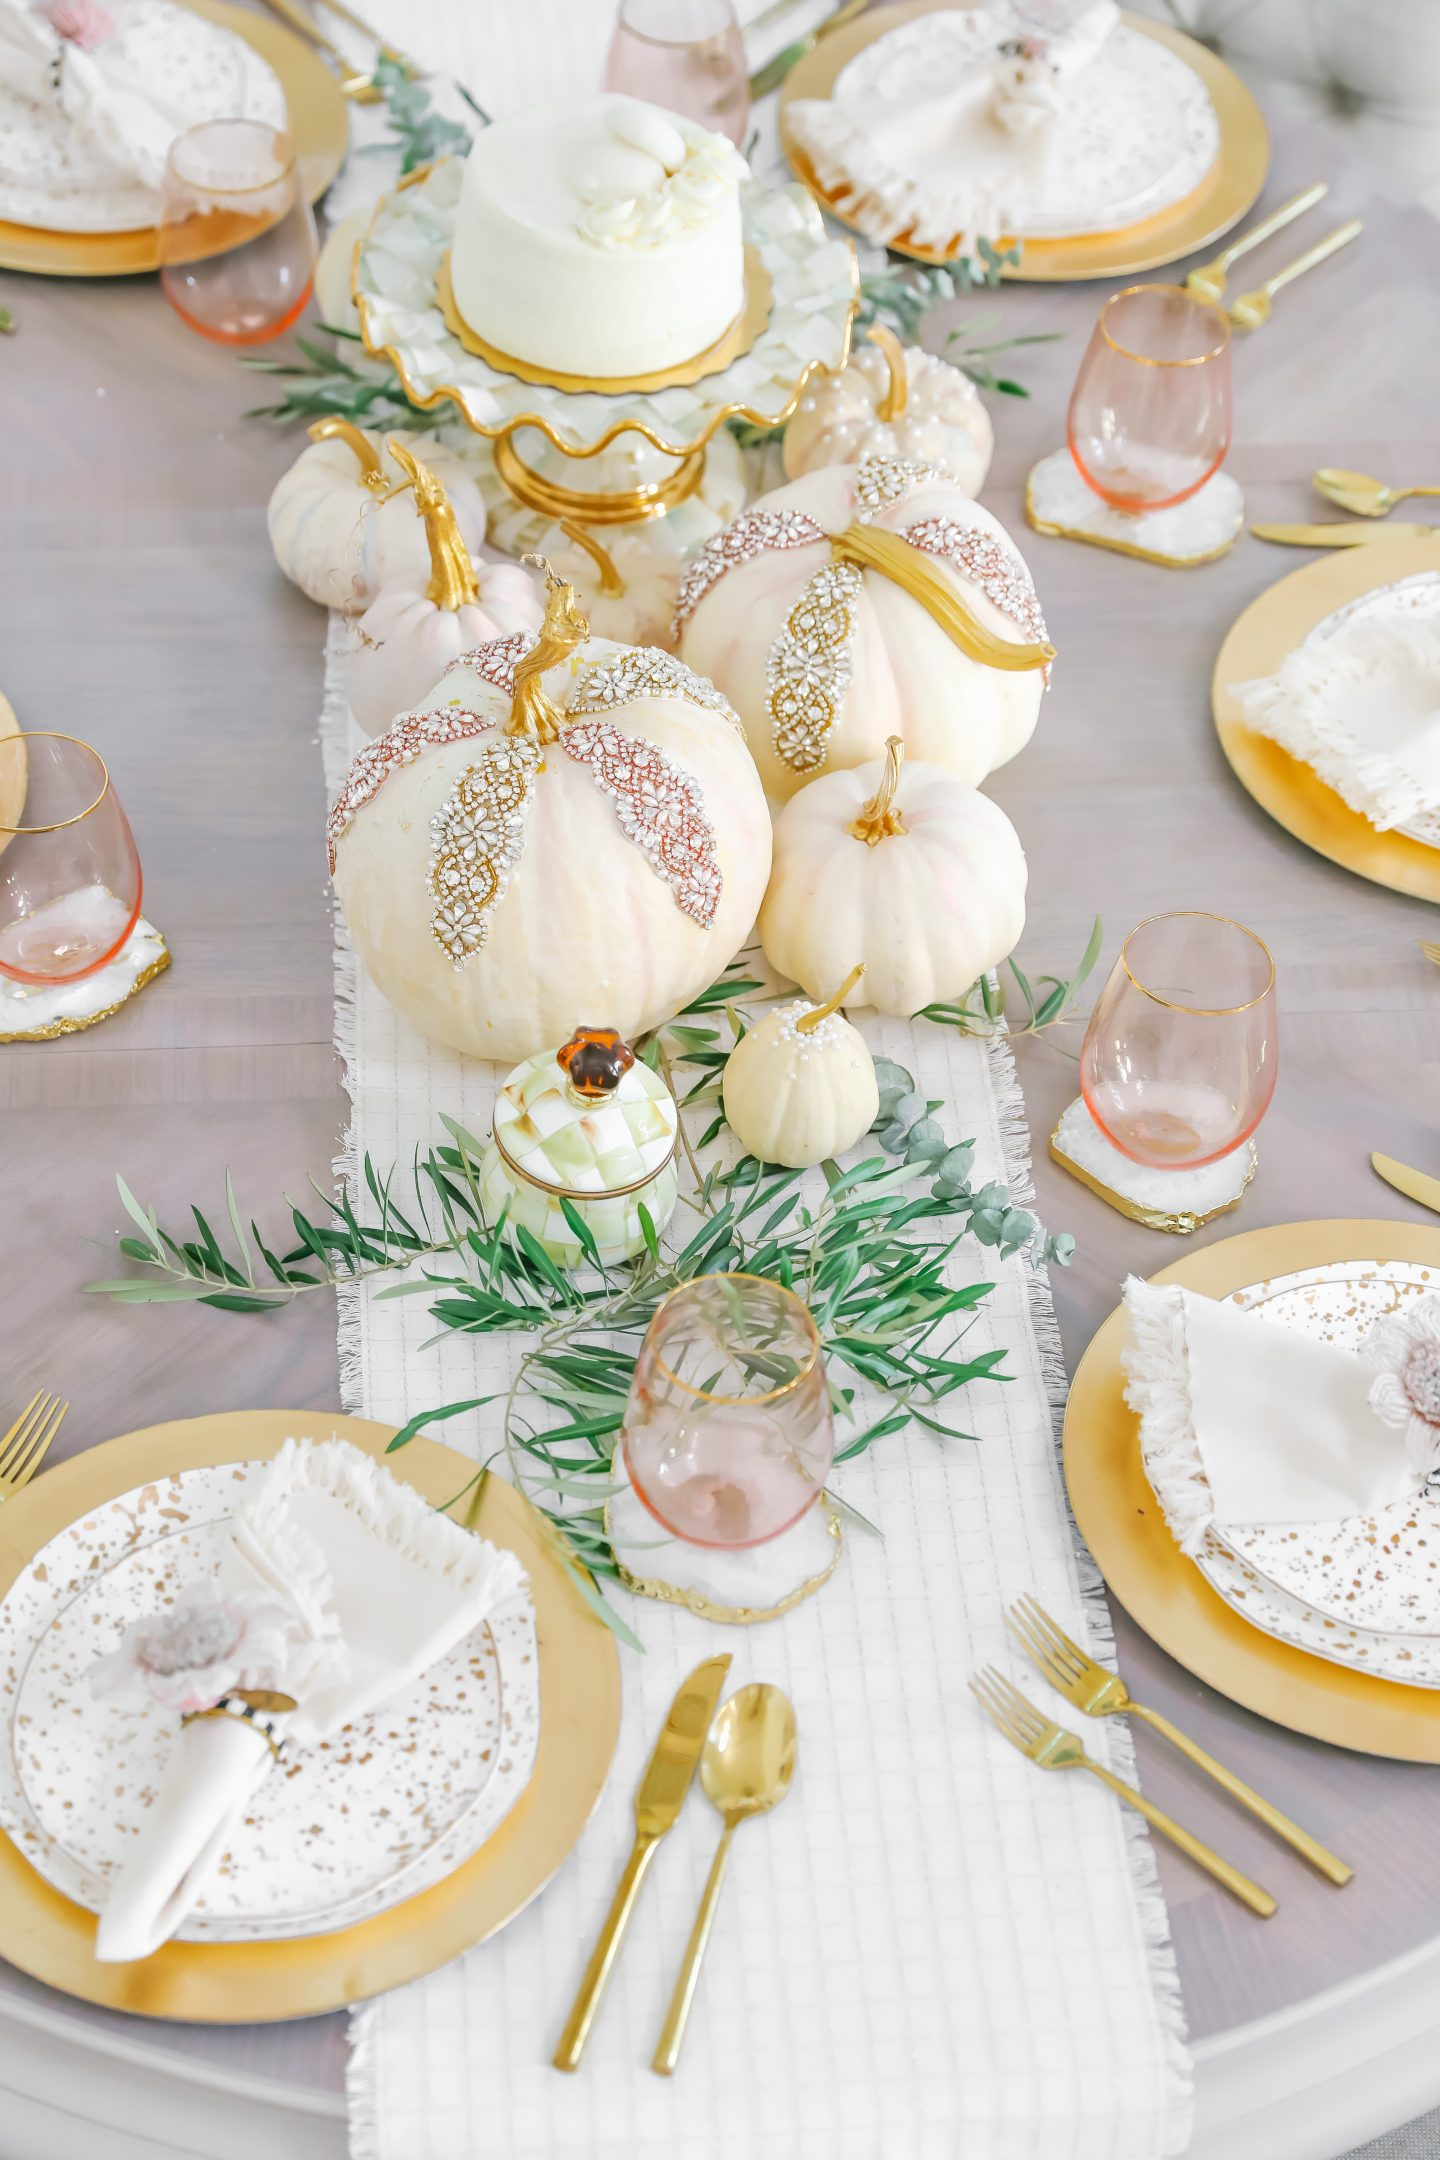 Thanksgiving table scape décor ideas, by top San Francisco fashion blogger Lombard and Fifth.